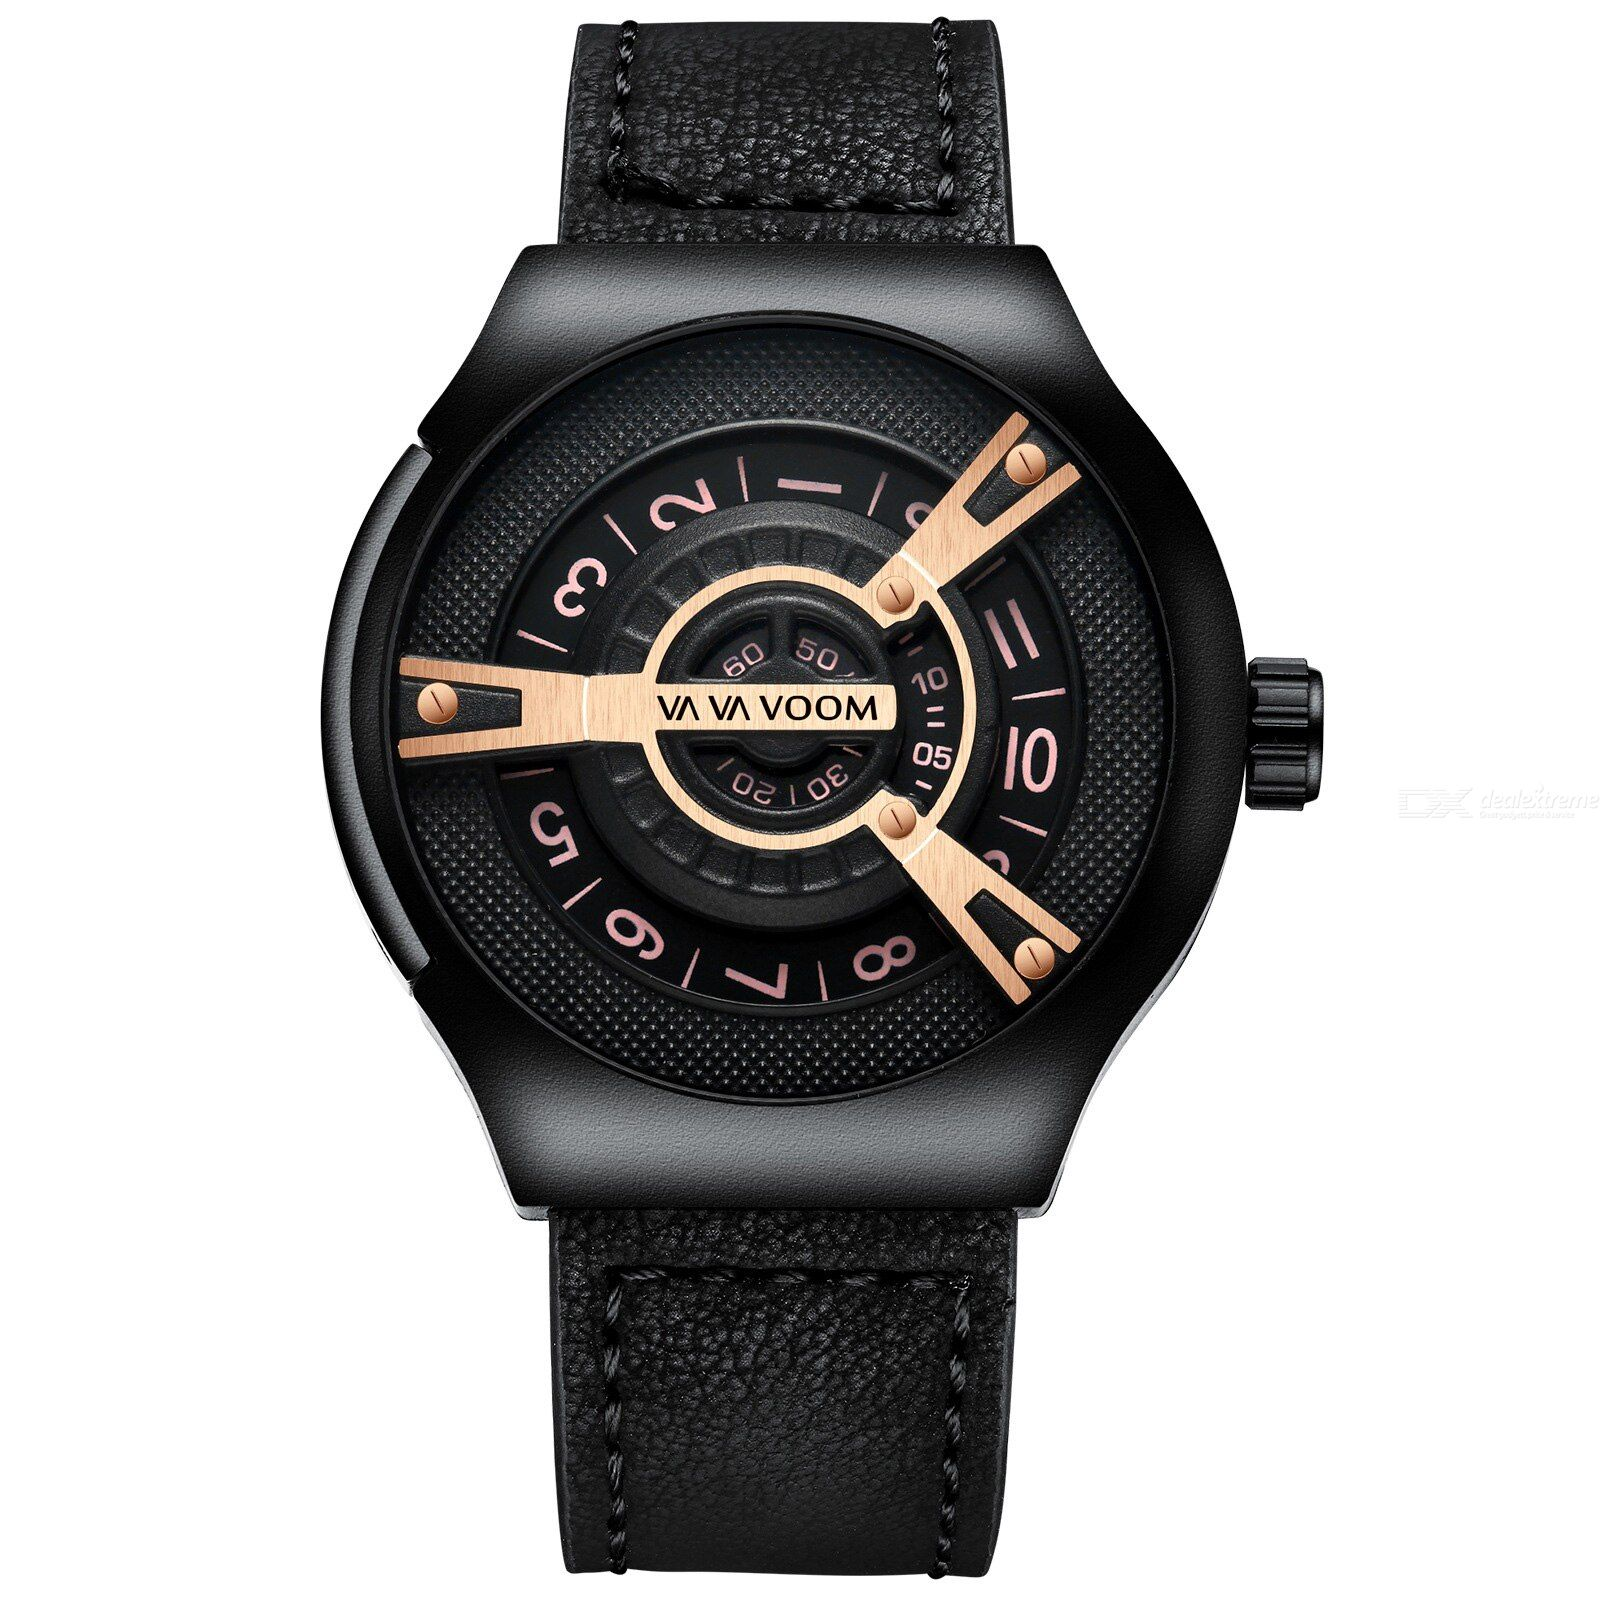 Vava voom men sport creative chronograph luxury casual leather wristwatch